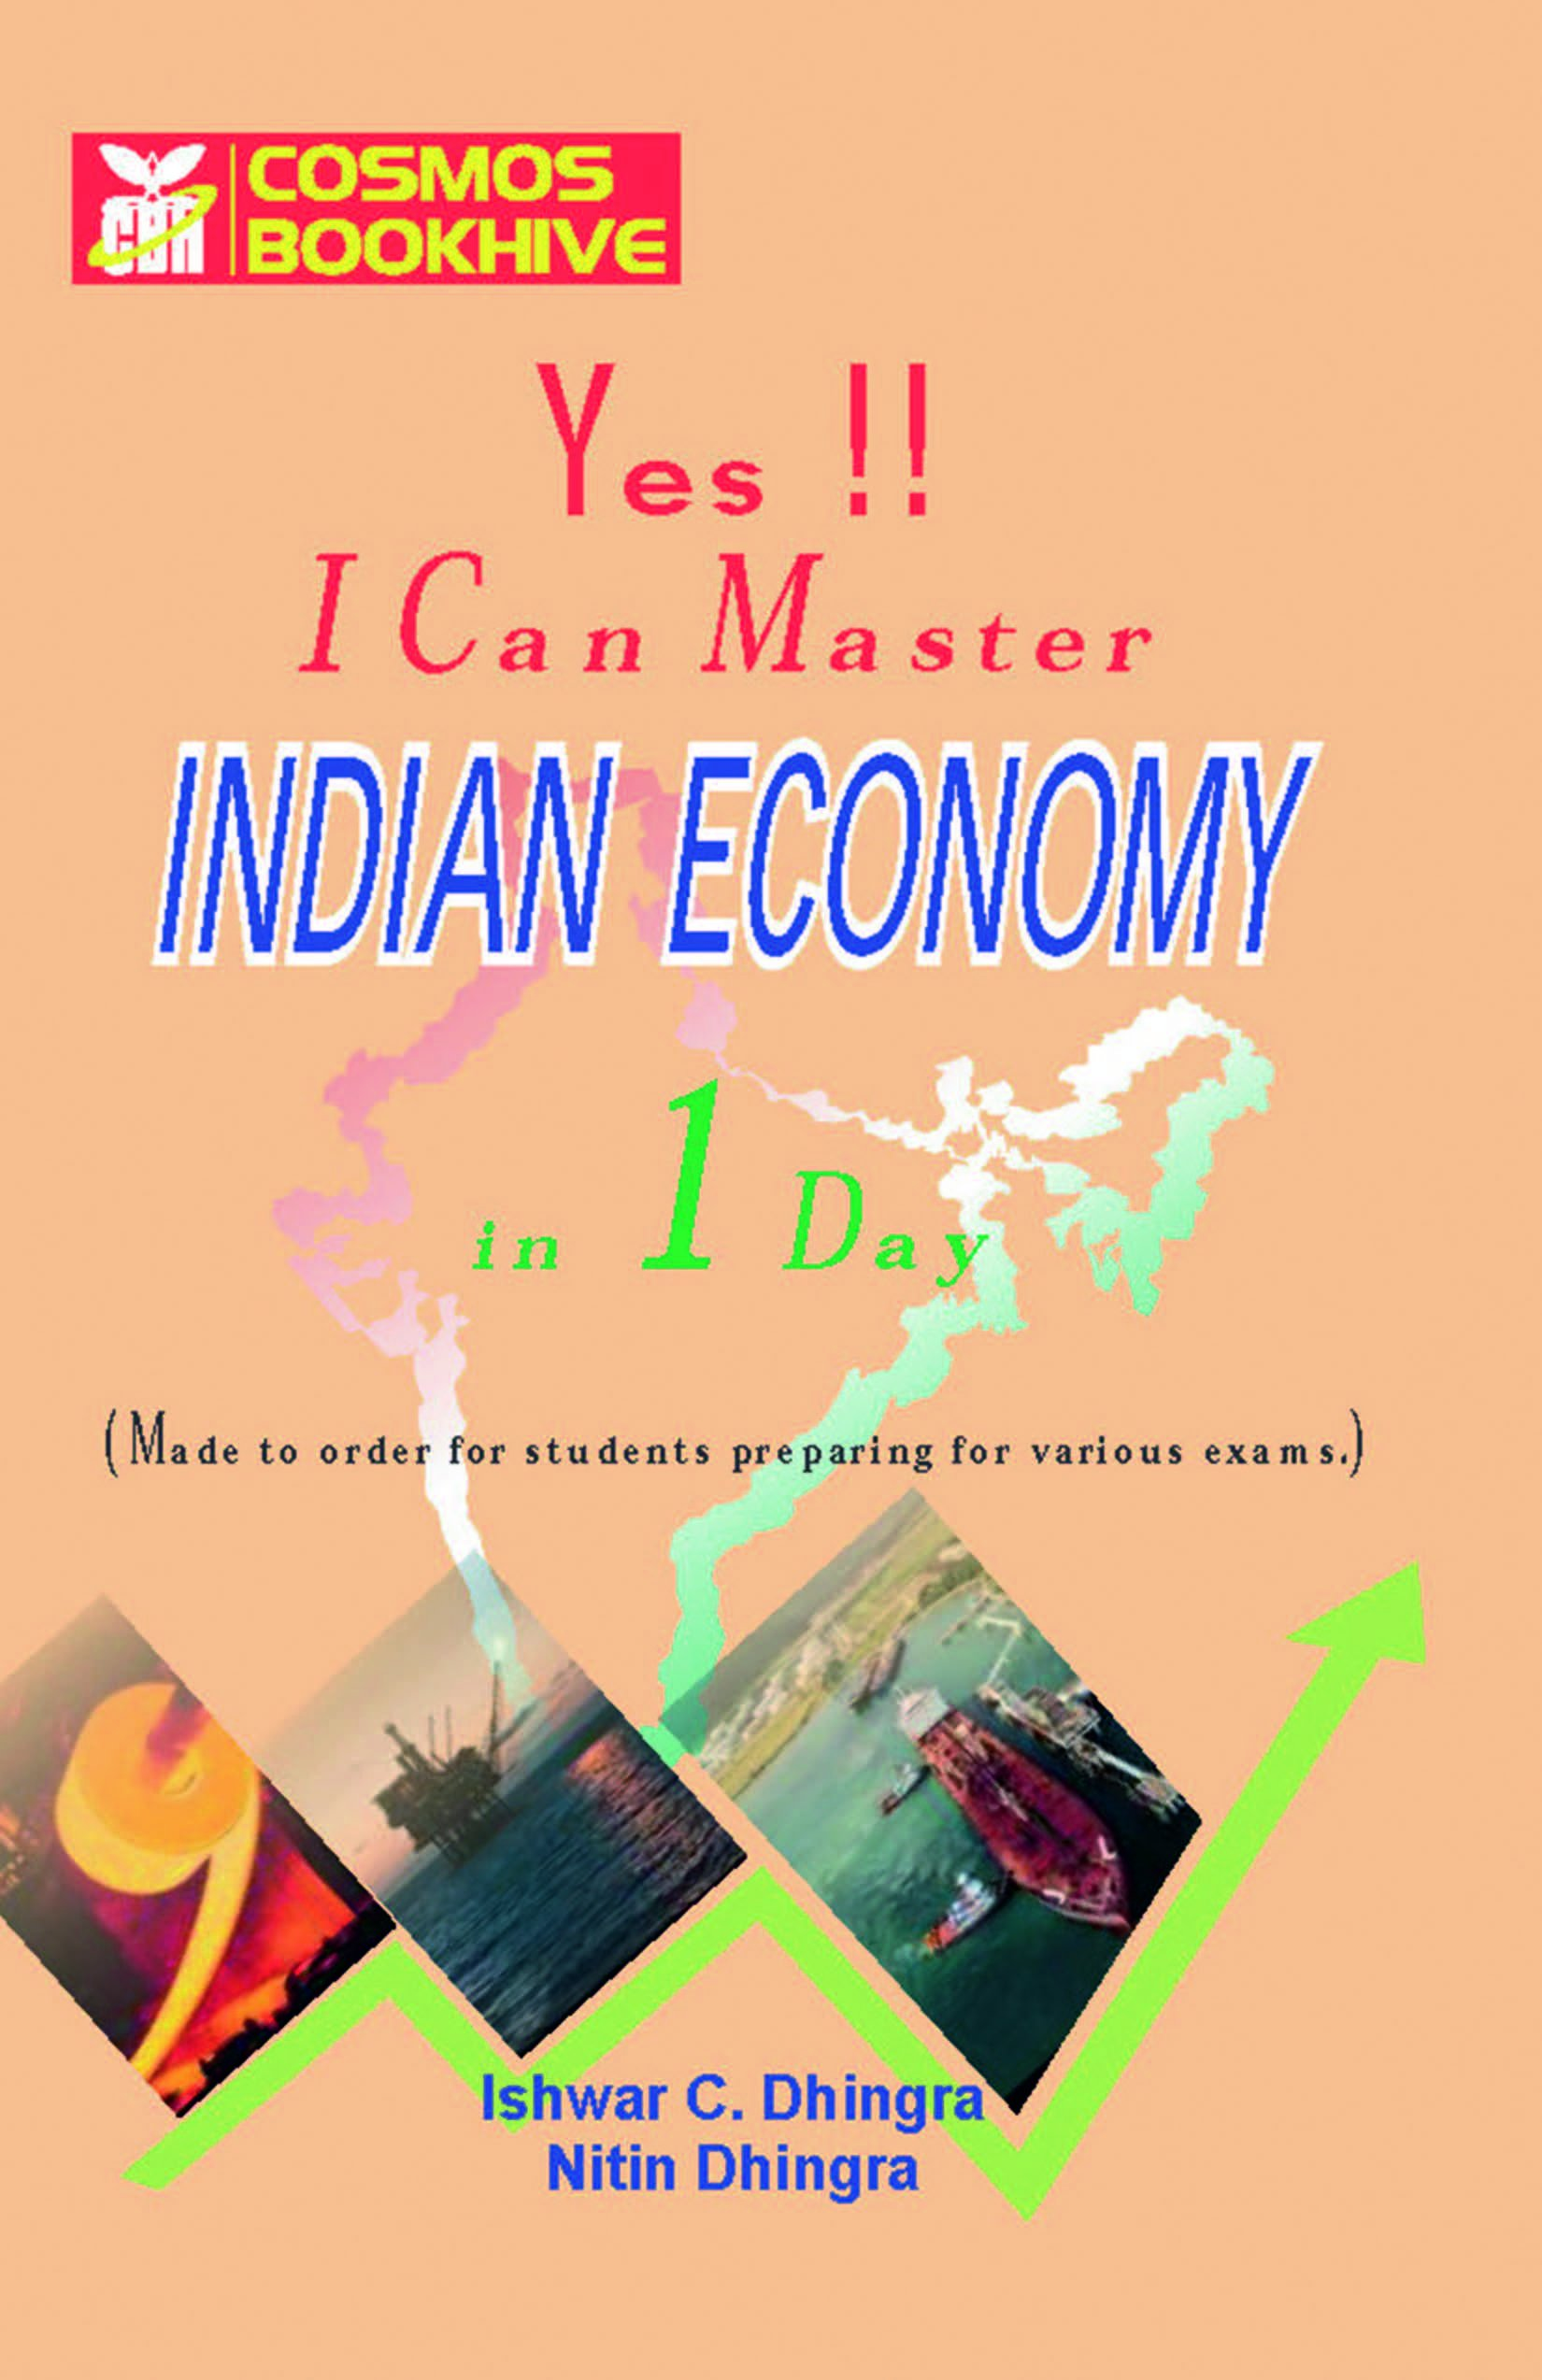 Evolution Of Indian Economy By Ic Dhingra 21